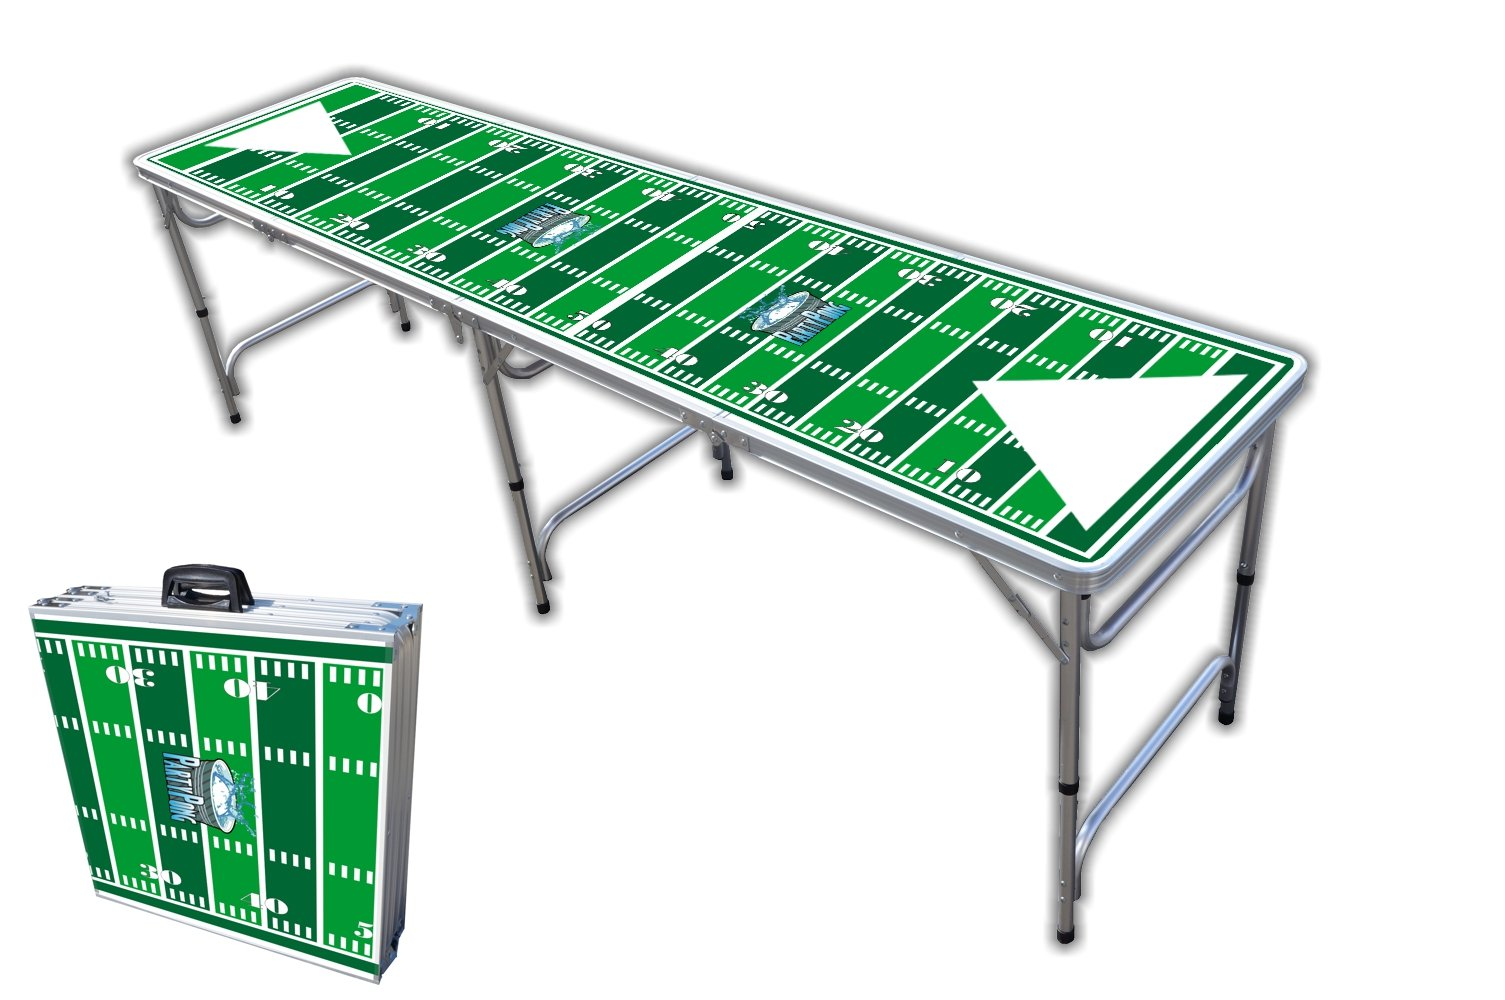 8-Foot Professional Beer Pong Table - Football Field Graphic by PartyPongTables.com